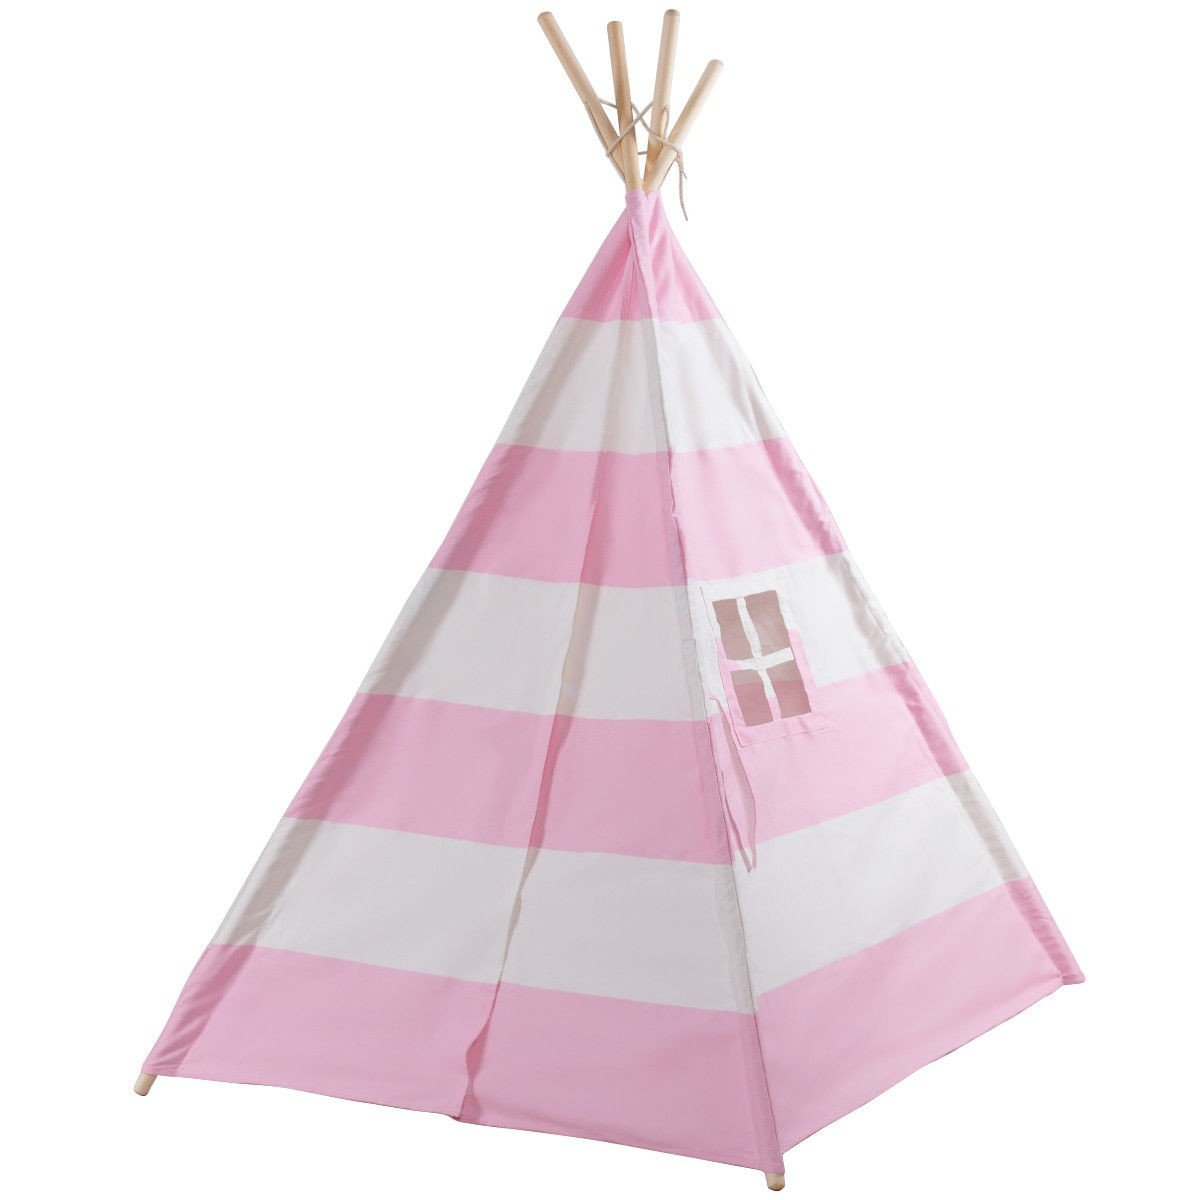 COSTWAY Kids Indian Play Tent Teepee Children Girl Boy Play House Sleeping Dome Bag Pink + FREE E - Book Only By eight24hours by COSTWAY (Image #1)